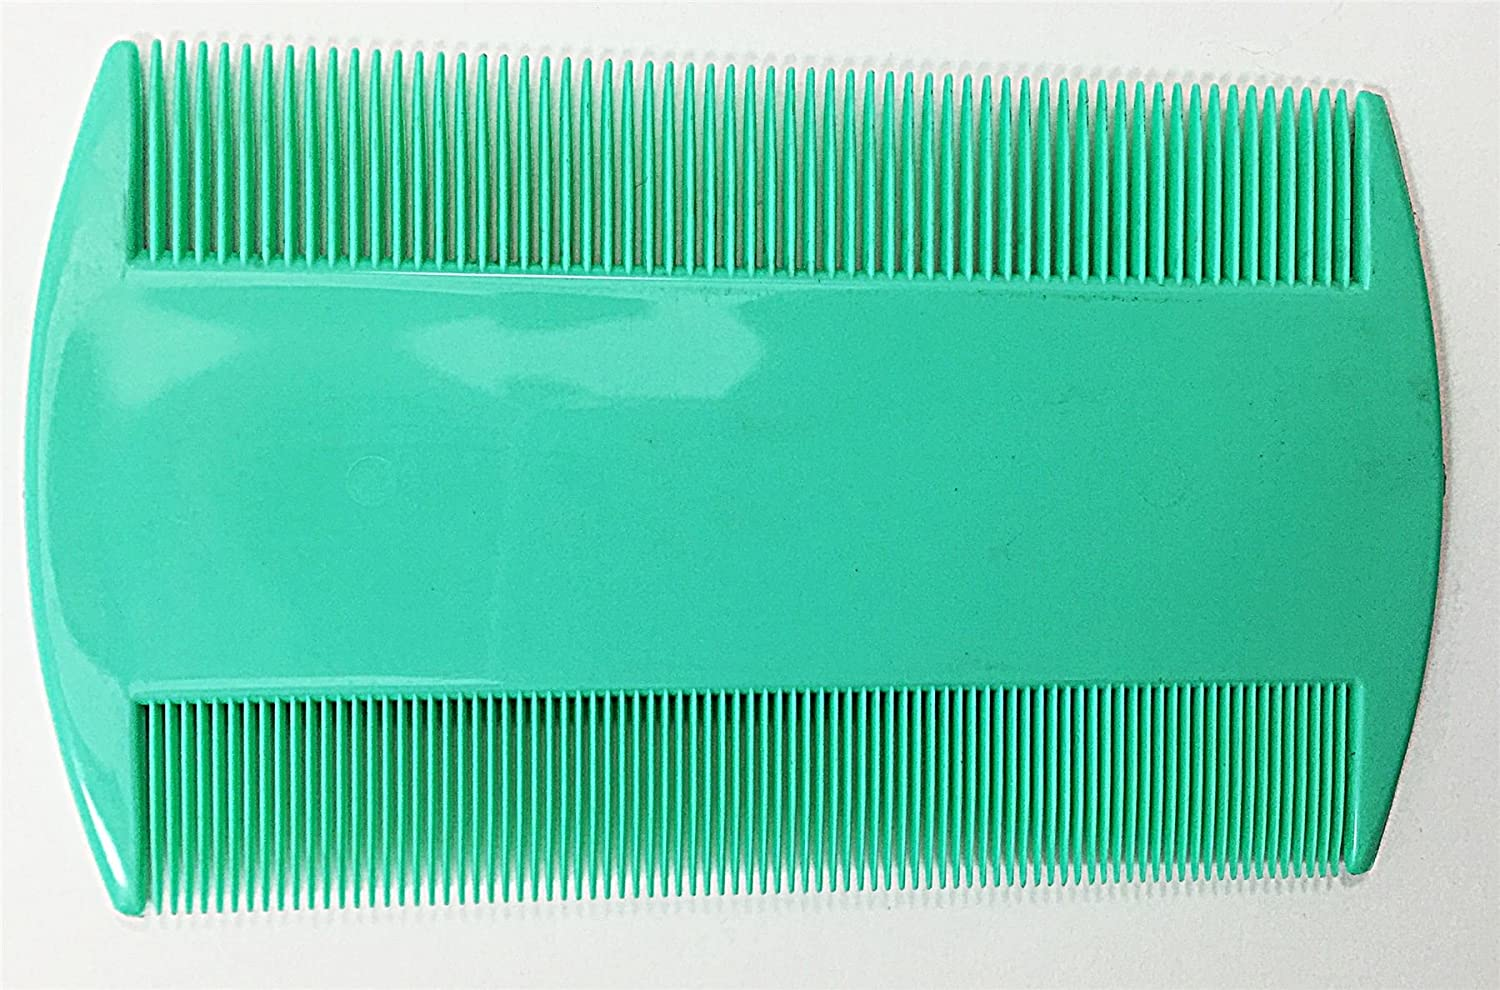 Baby Blue Durable Double Sided Nit Combs for Head Lice Dectection Comb Kids Pet Flea Concept4u